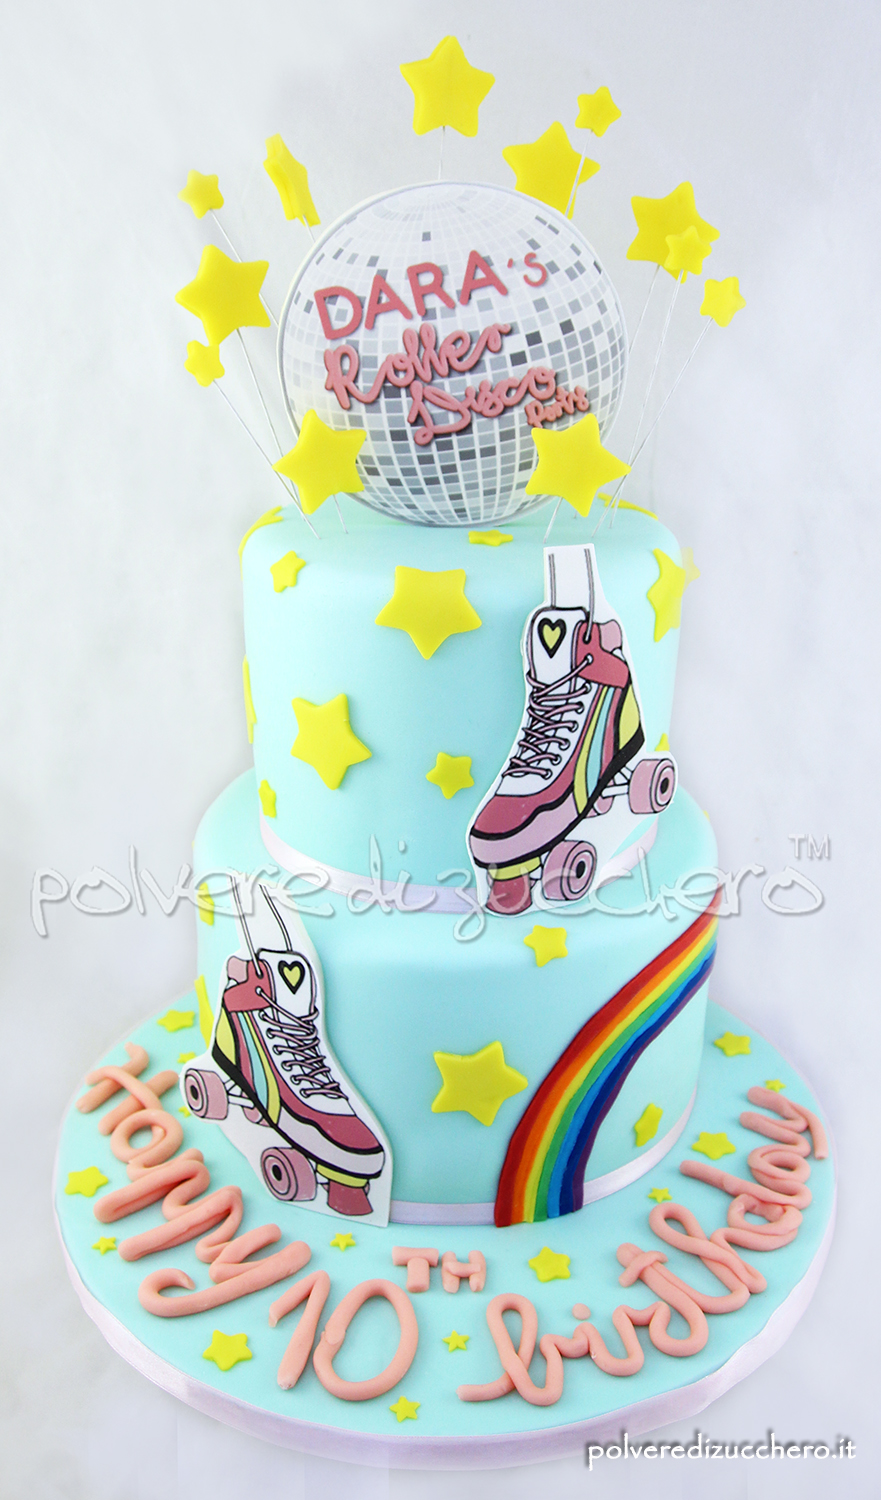 torta decorata cake design pasta di zucchero roller disco party pattini cake art polvere di zucchero